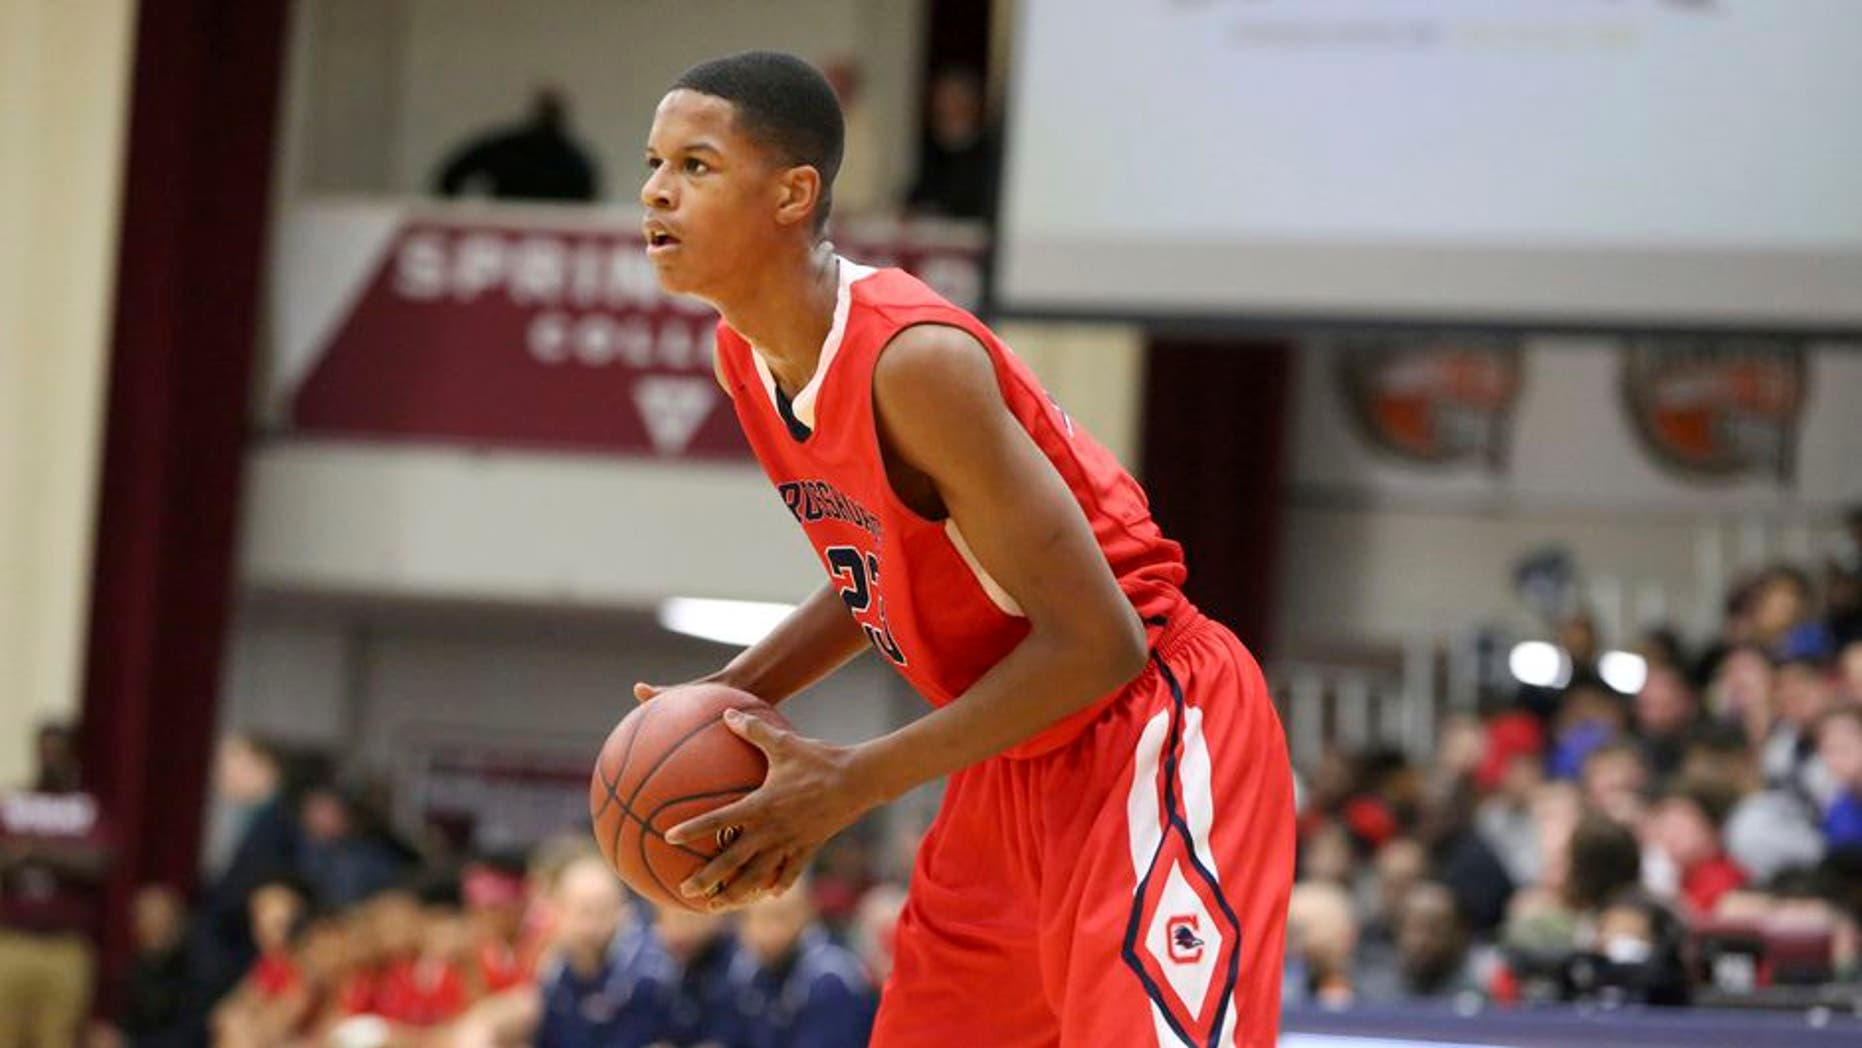 Crossroads School's Shareef O'Neal #23 in action against Cambridge Rindge and Latin during a high school basketball game at the 2017 Hoophall Classic on Saturday, January 14,, 2017, in Springfield, MA.. Cambridge Rindge and Latin won. (AP Photo/Gregory Payan)